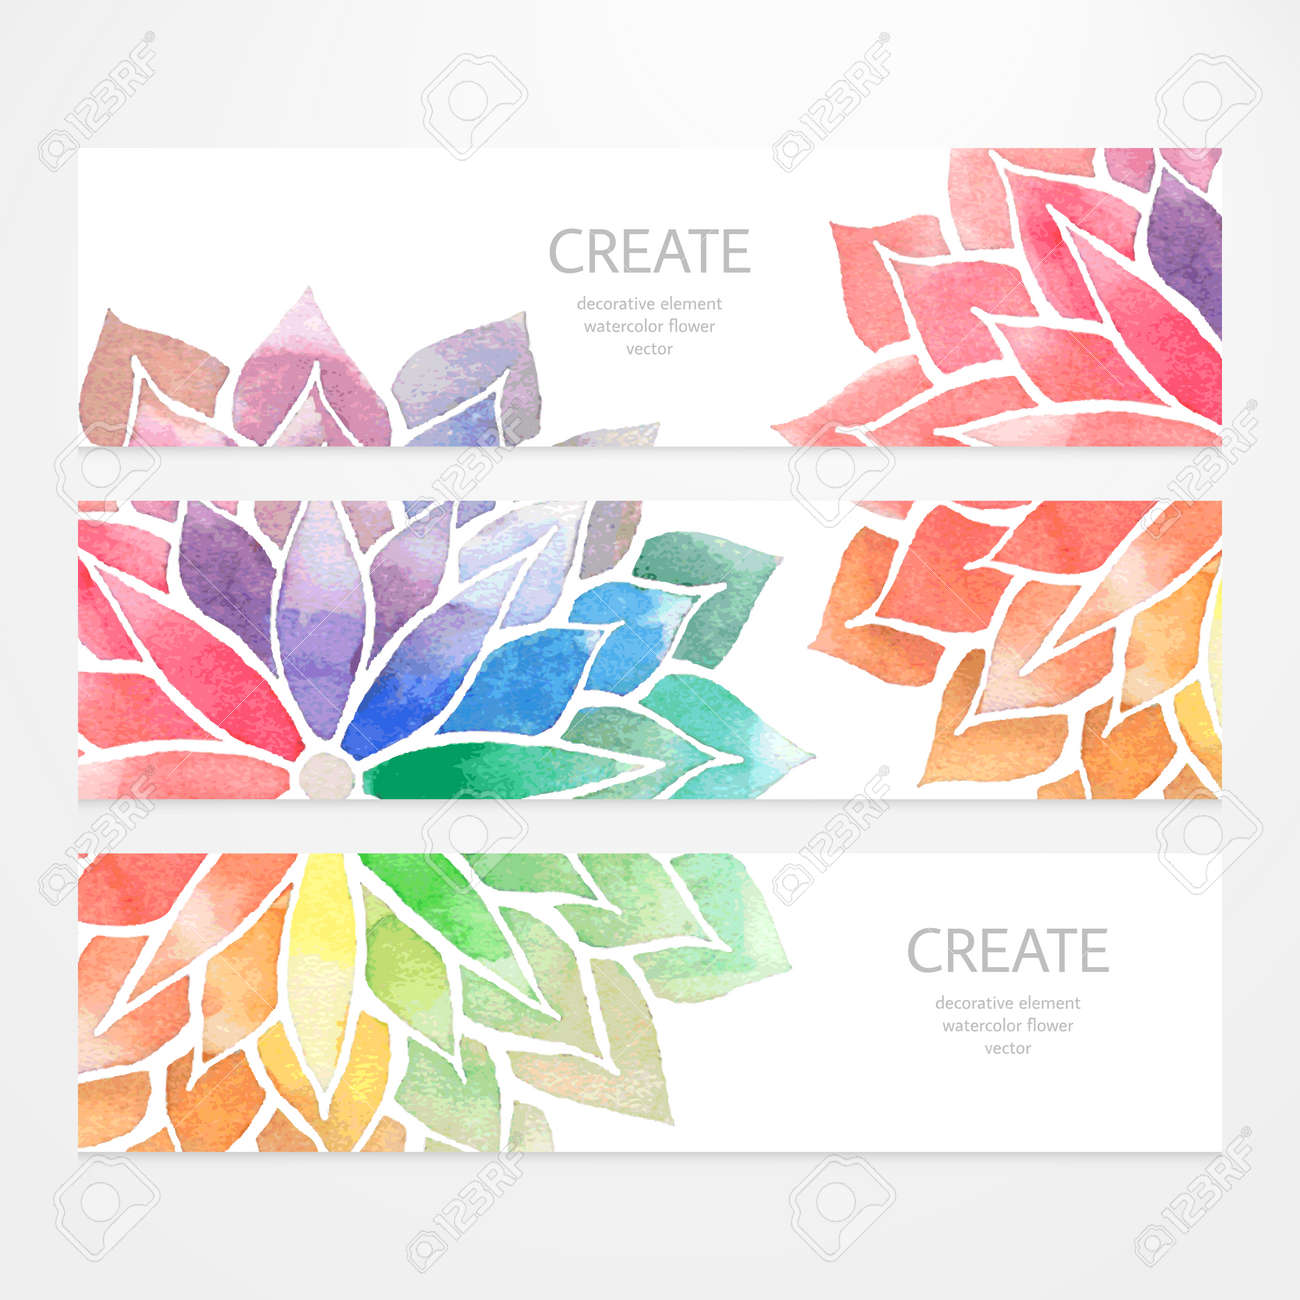 Colorful Banners, Flyers. Vector Templates Of Design With Watercolor ...